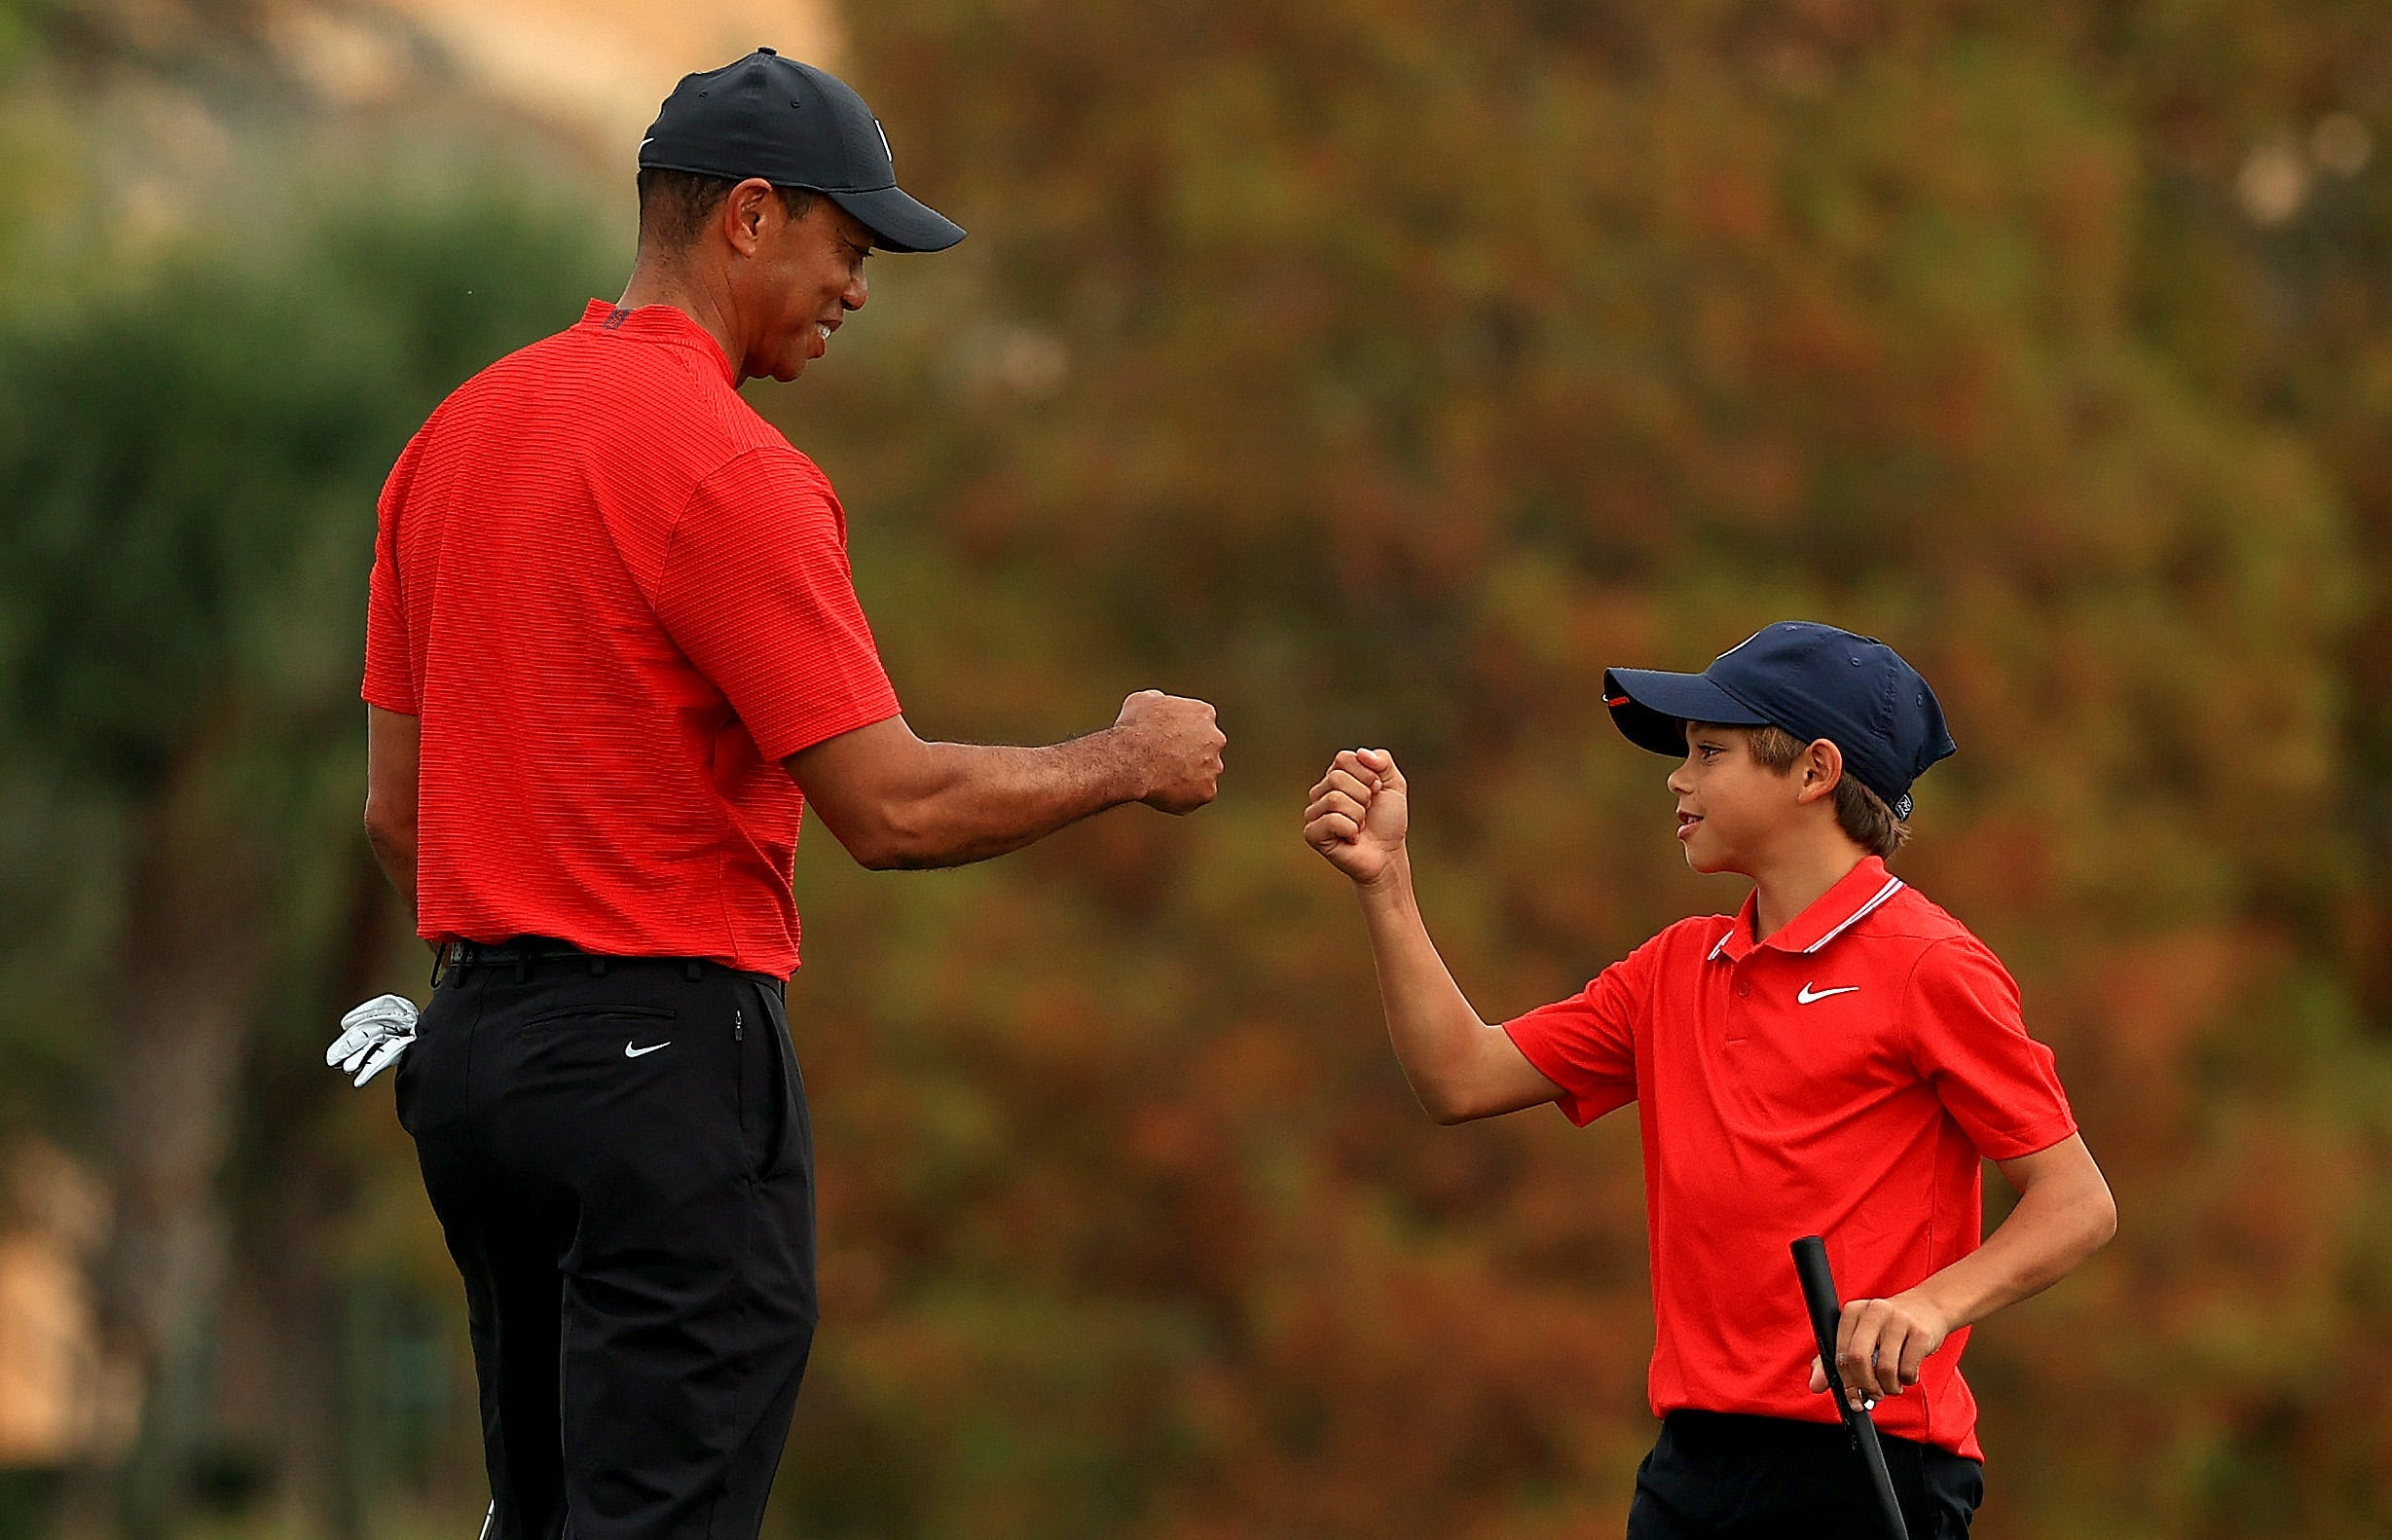 Tiger Woods fist bumps his son Charlie while playing golf together for the PNC Championship.